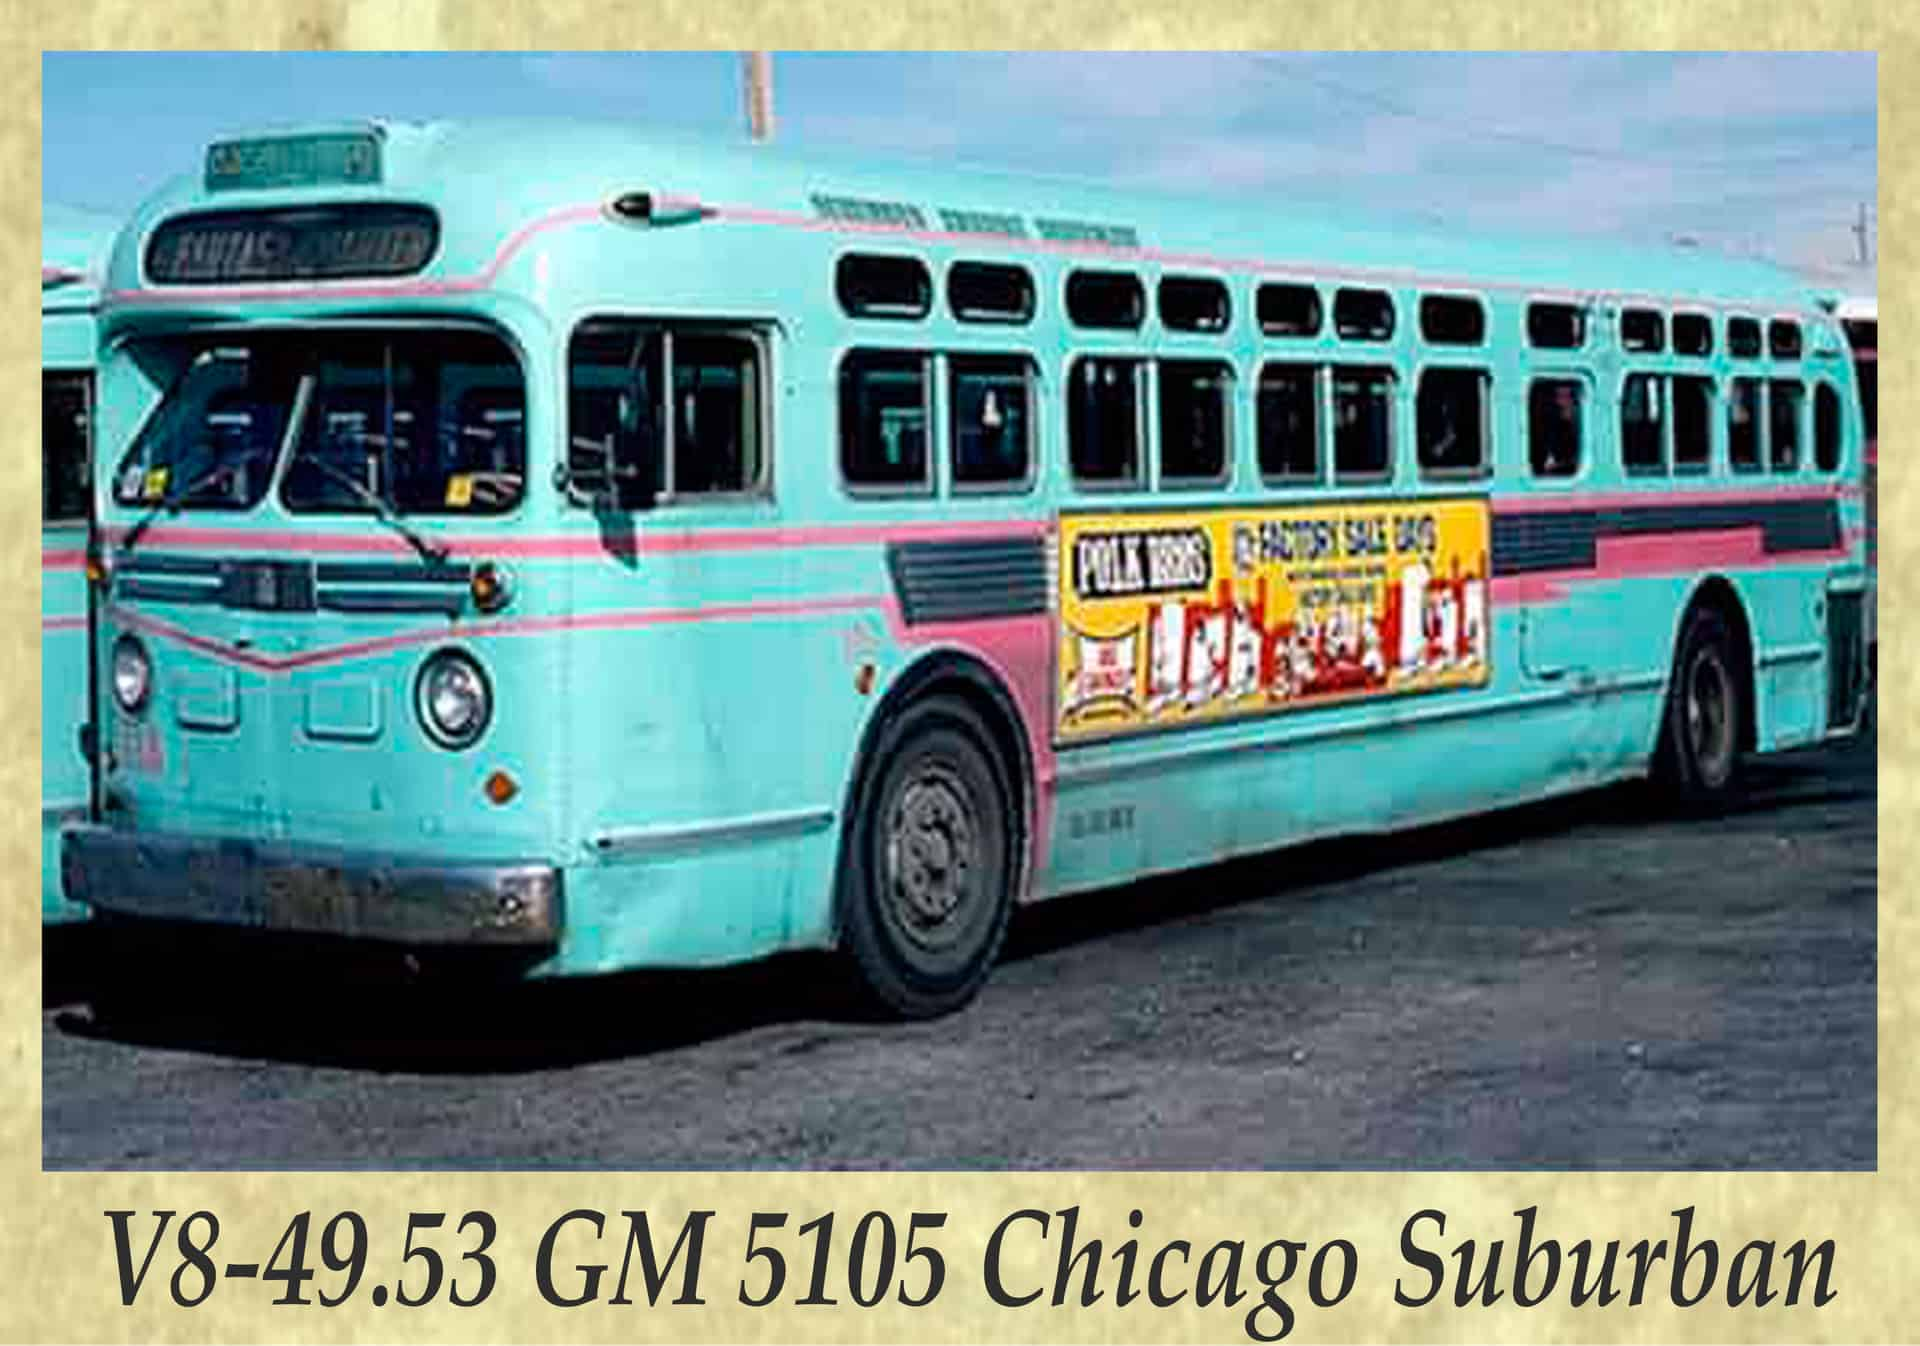 V8-49.53 GM 5105 Chicago Suburban